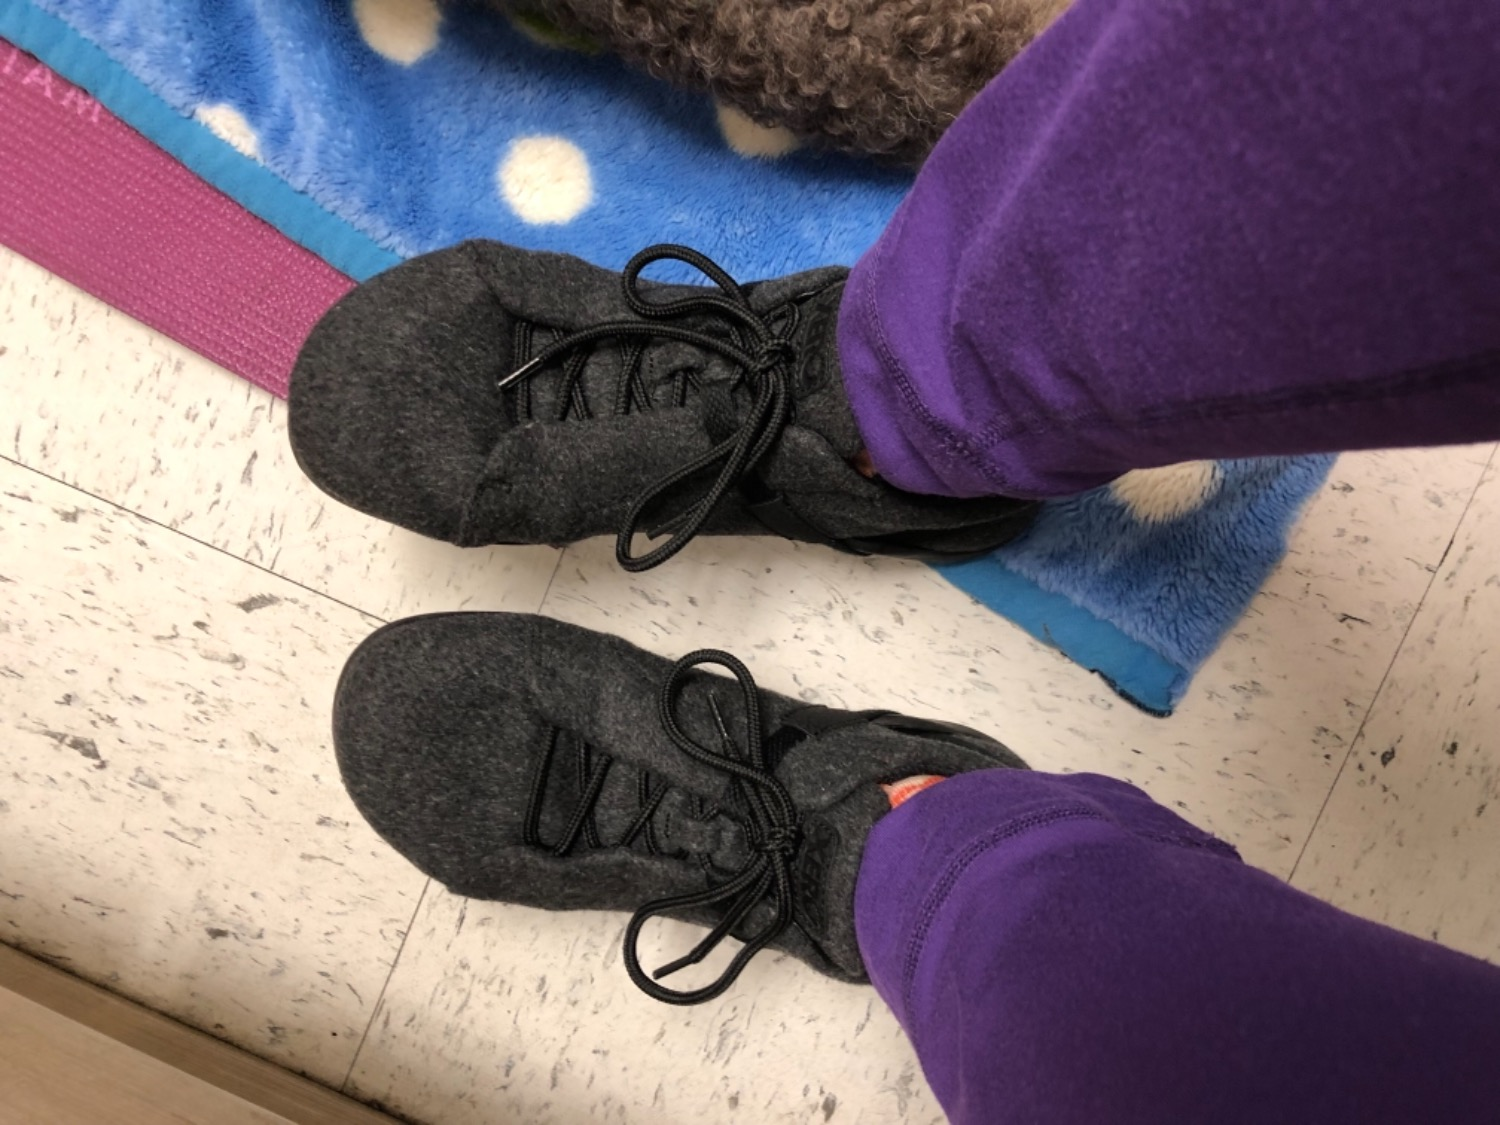 223caa4229a0 I have terrible bunions and have a lot of trouble finding any shoes that  fit. Theses are amazing. The men shoe fit me much better than the woman s.